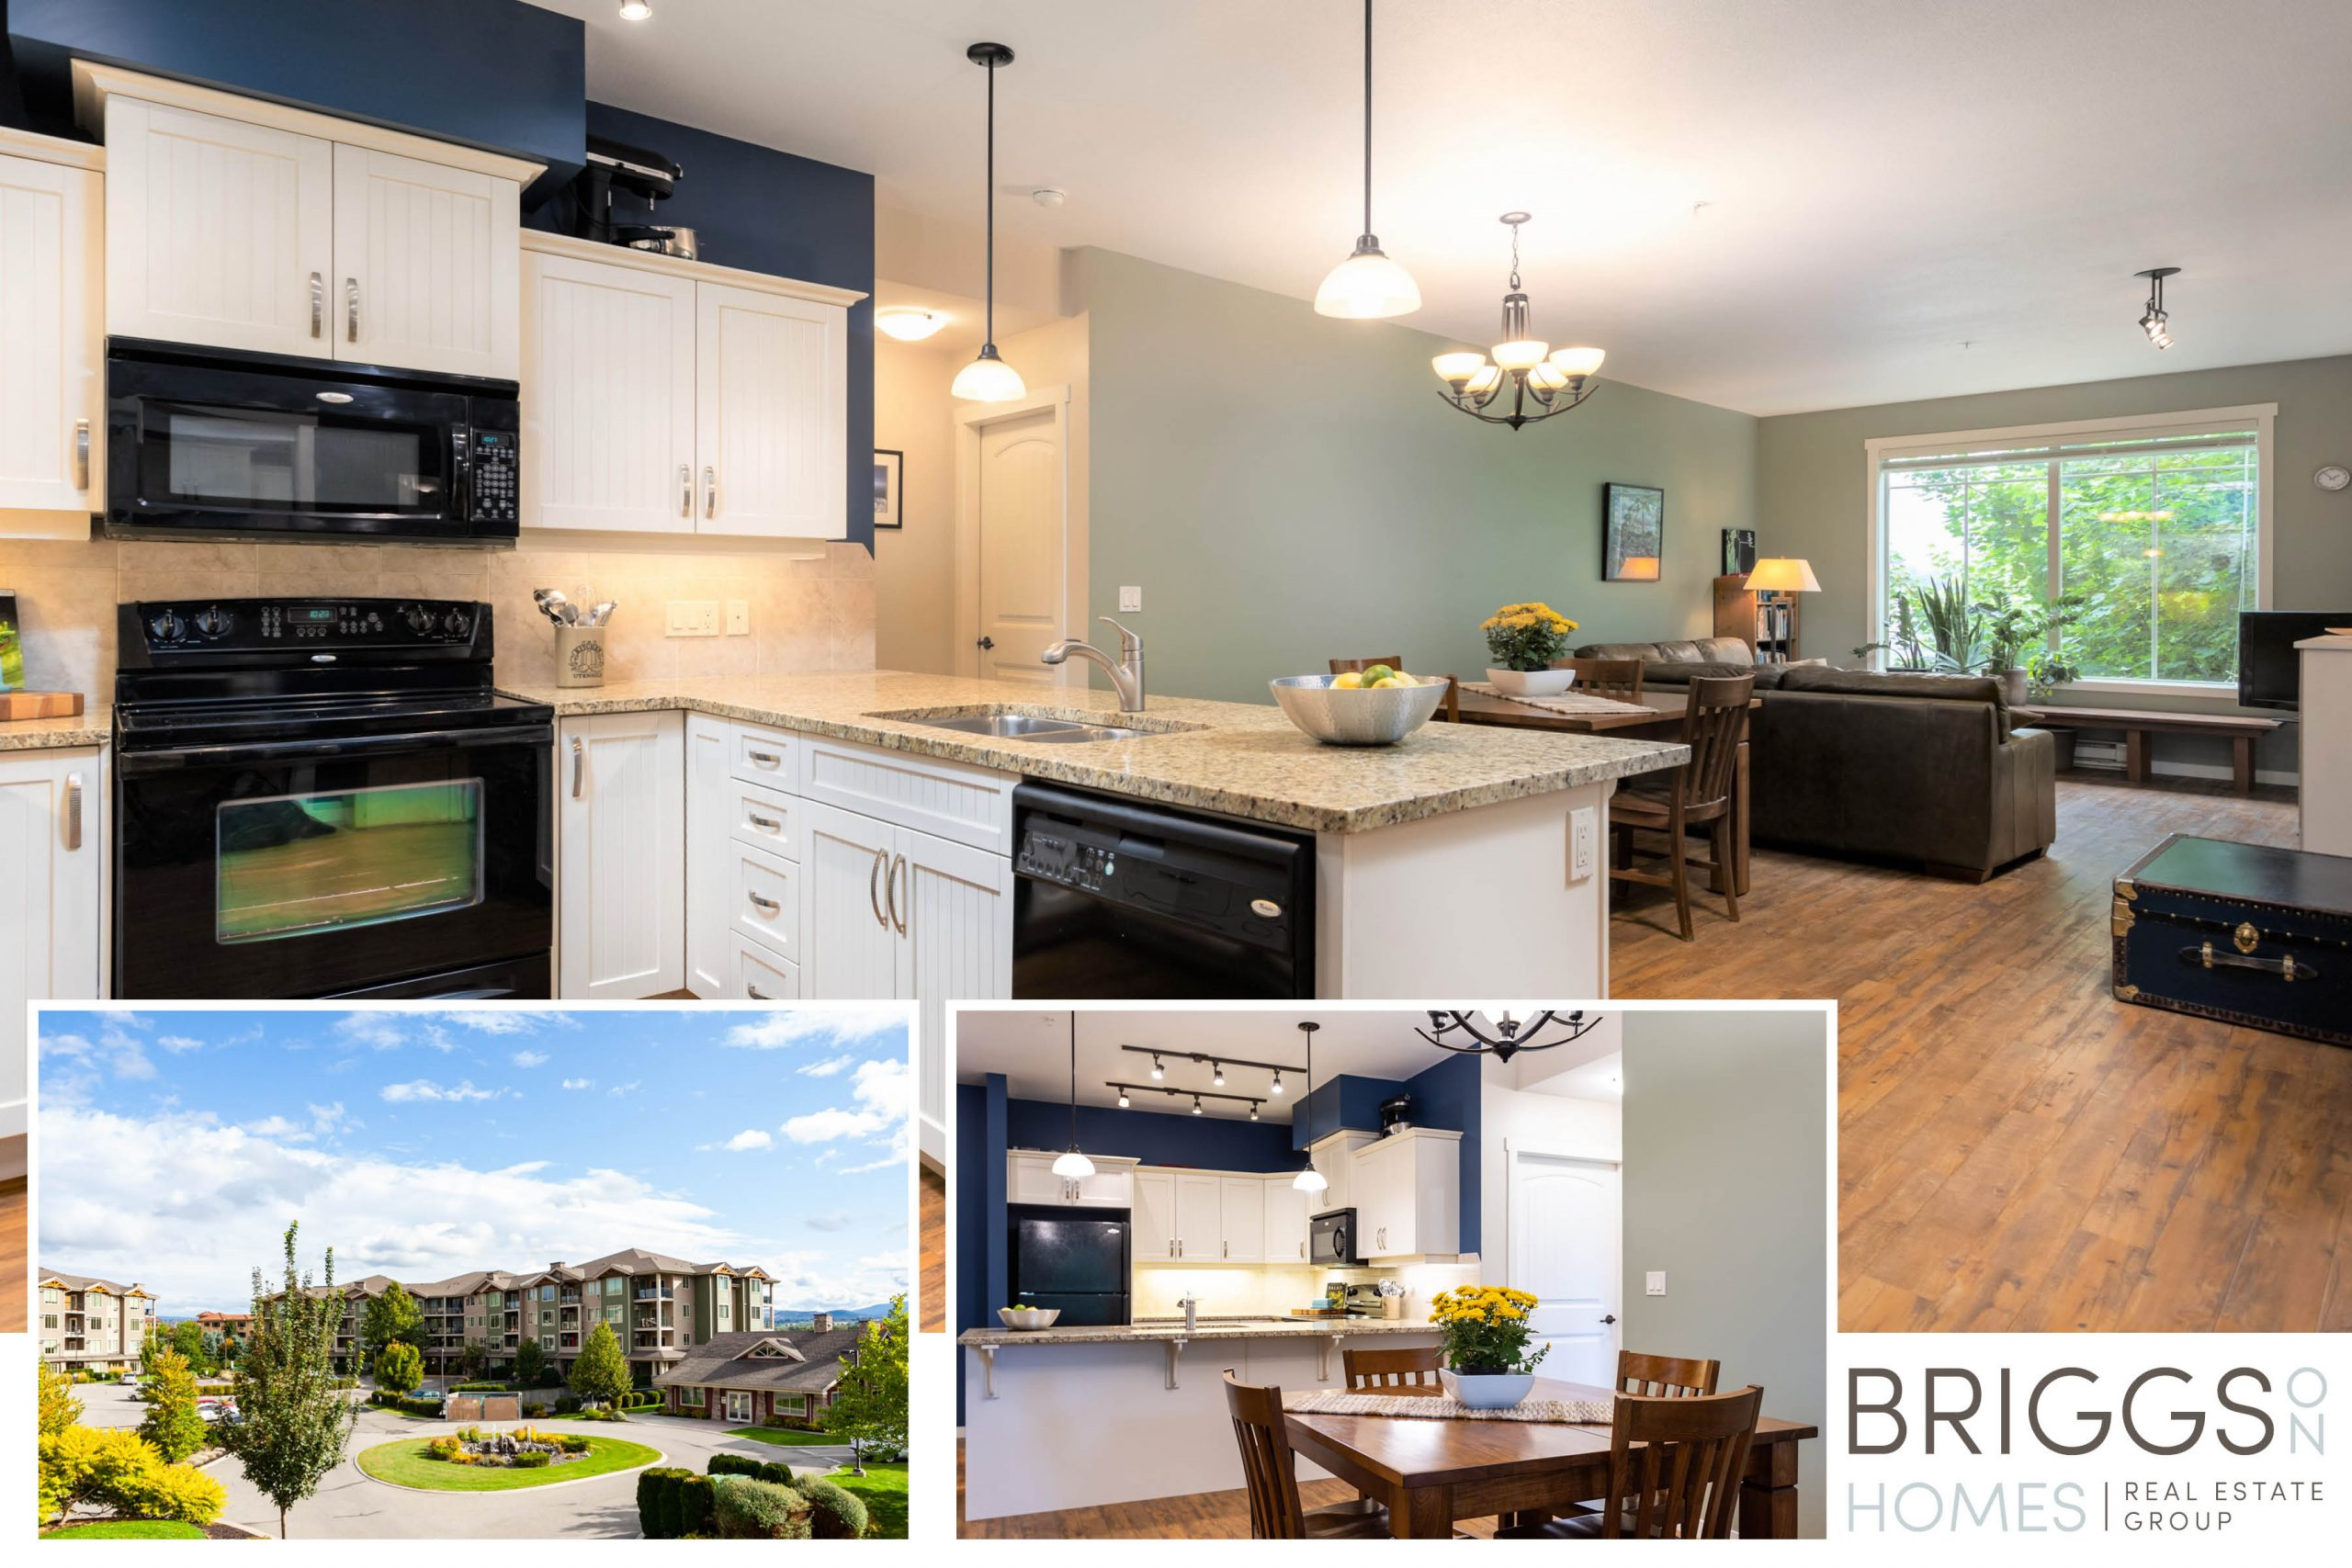 JUST SOLD! Two bedroom condo at Mission Meadows